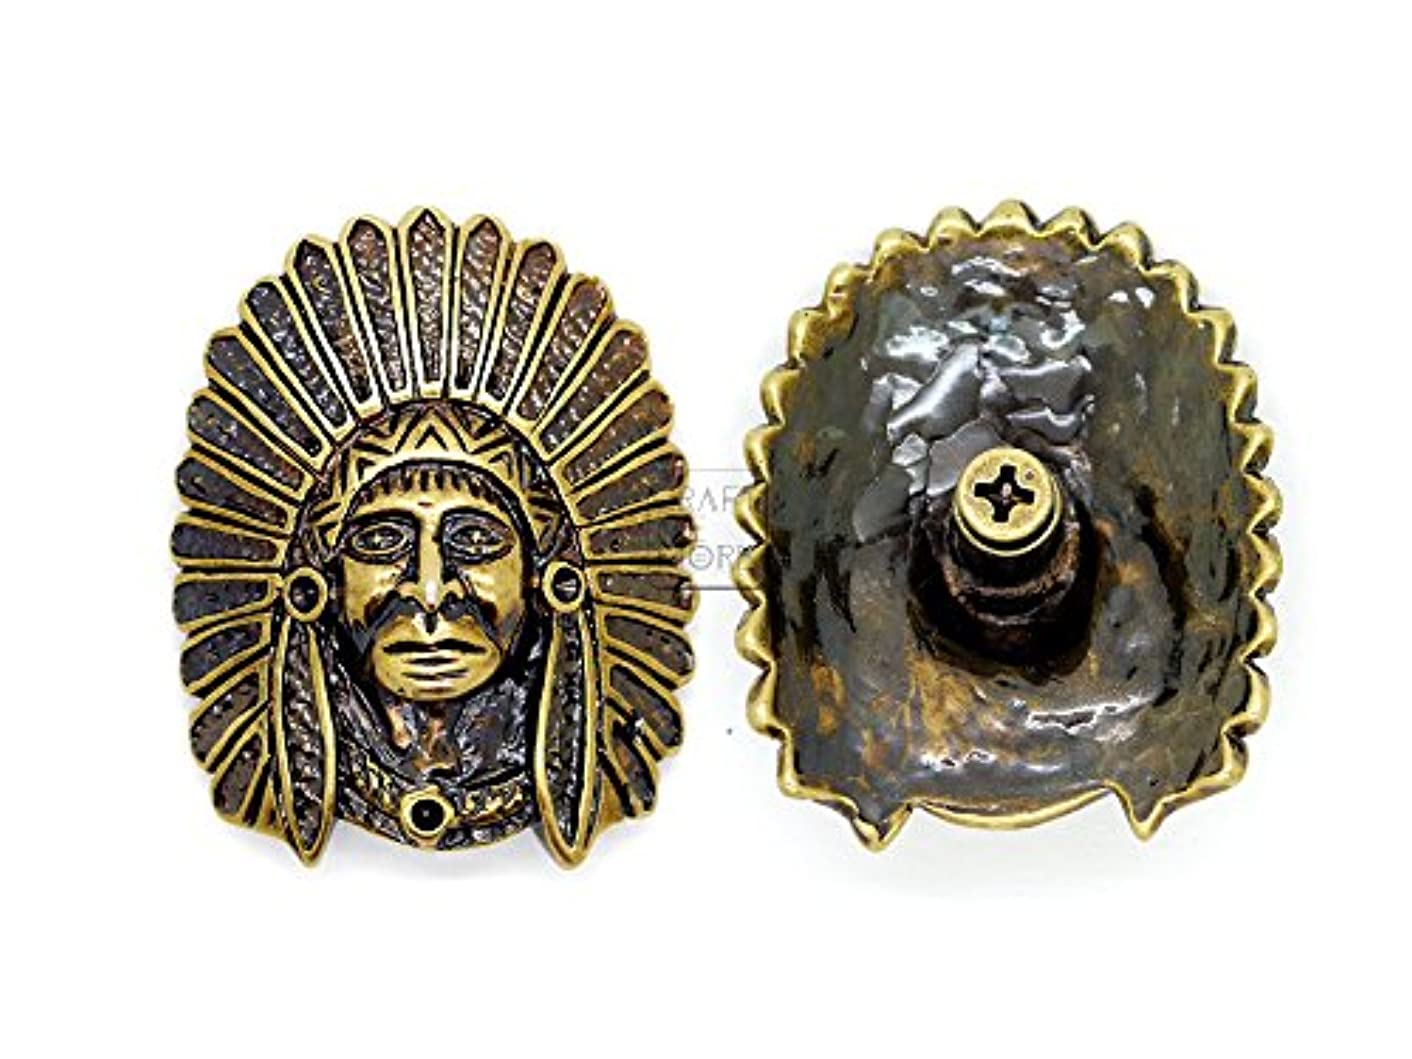 CRAFTMEmore 32x40 mm Indian Tribal Chief Head Concho Screw Back Leathercraft Decorations Pack of 2 HQR108 (Bronze)